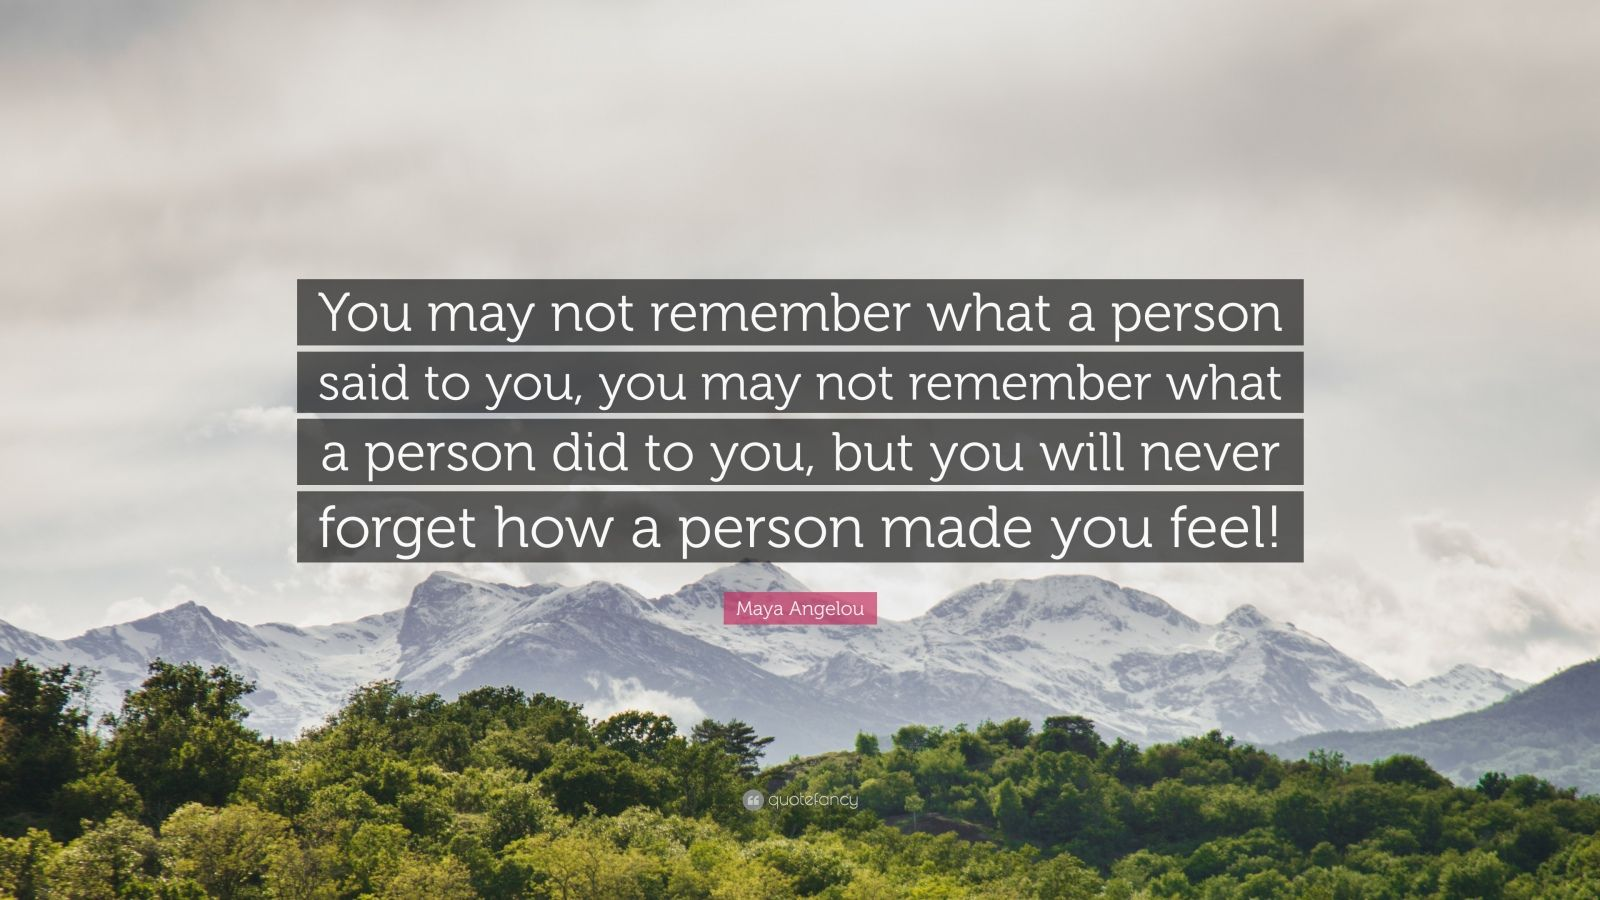 "Maya Angelou Quote: ""You may not remember what a person said to you, you may not remember what a person did to you, but you will never forget how a person made you feel!"""